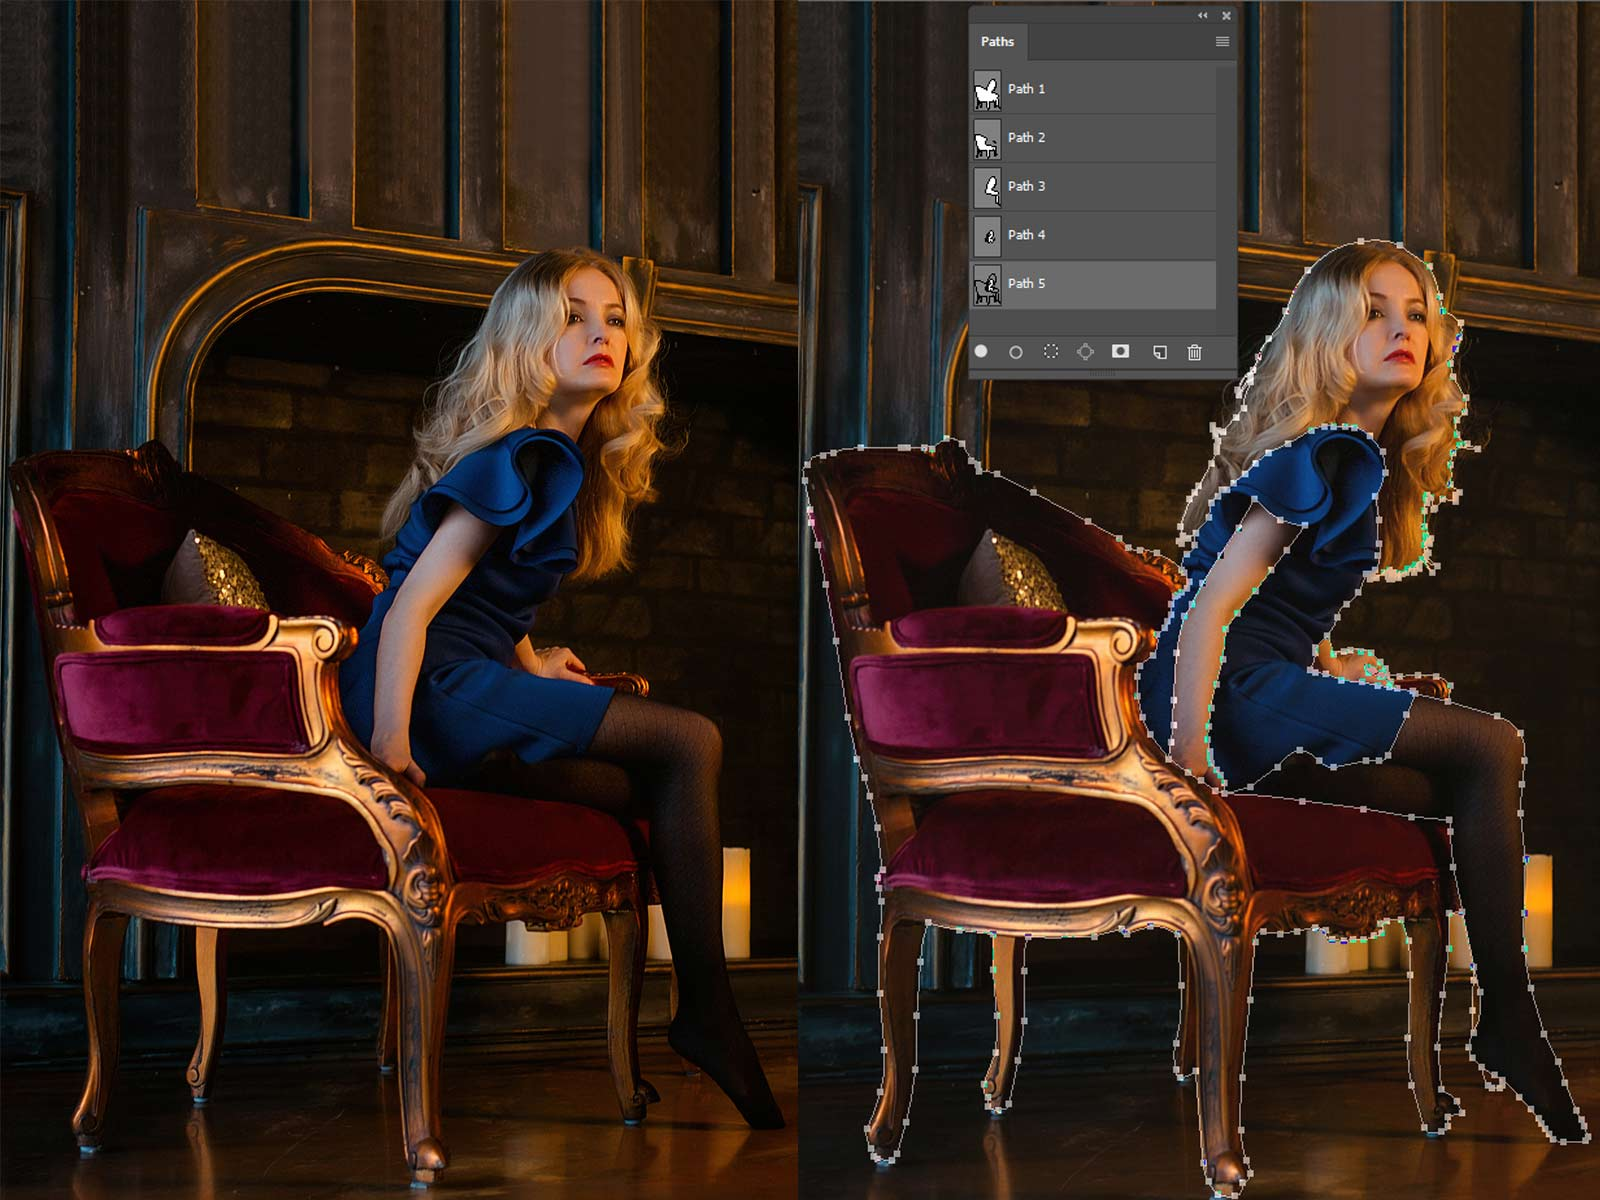 Multi Clipping Path by Alpha Clipping Path